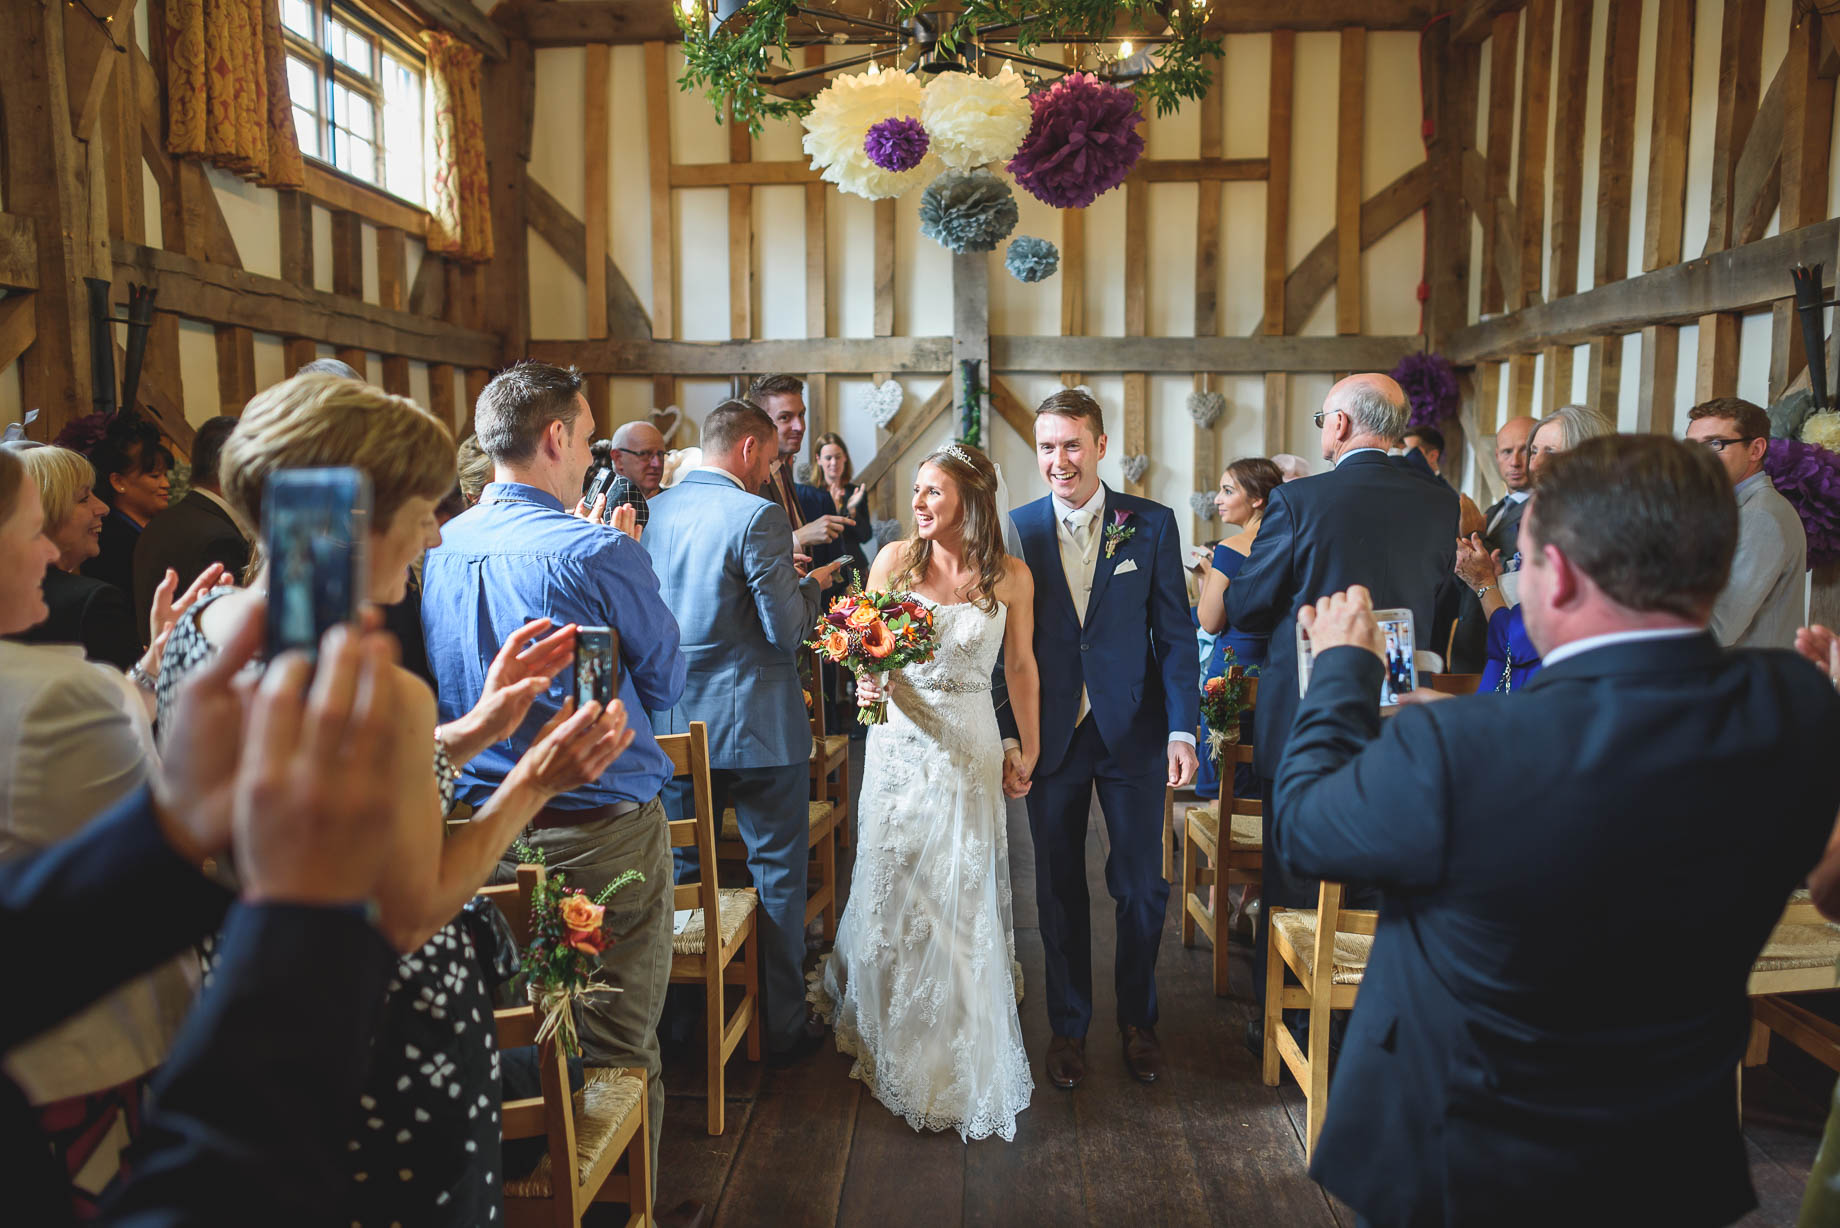 Gate Street Barn wedding photography - Guy Collier - Claire and Andy (62 of 192)